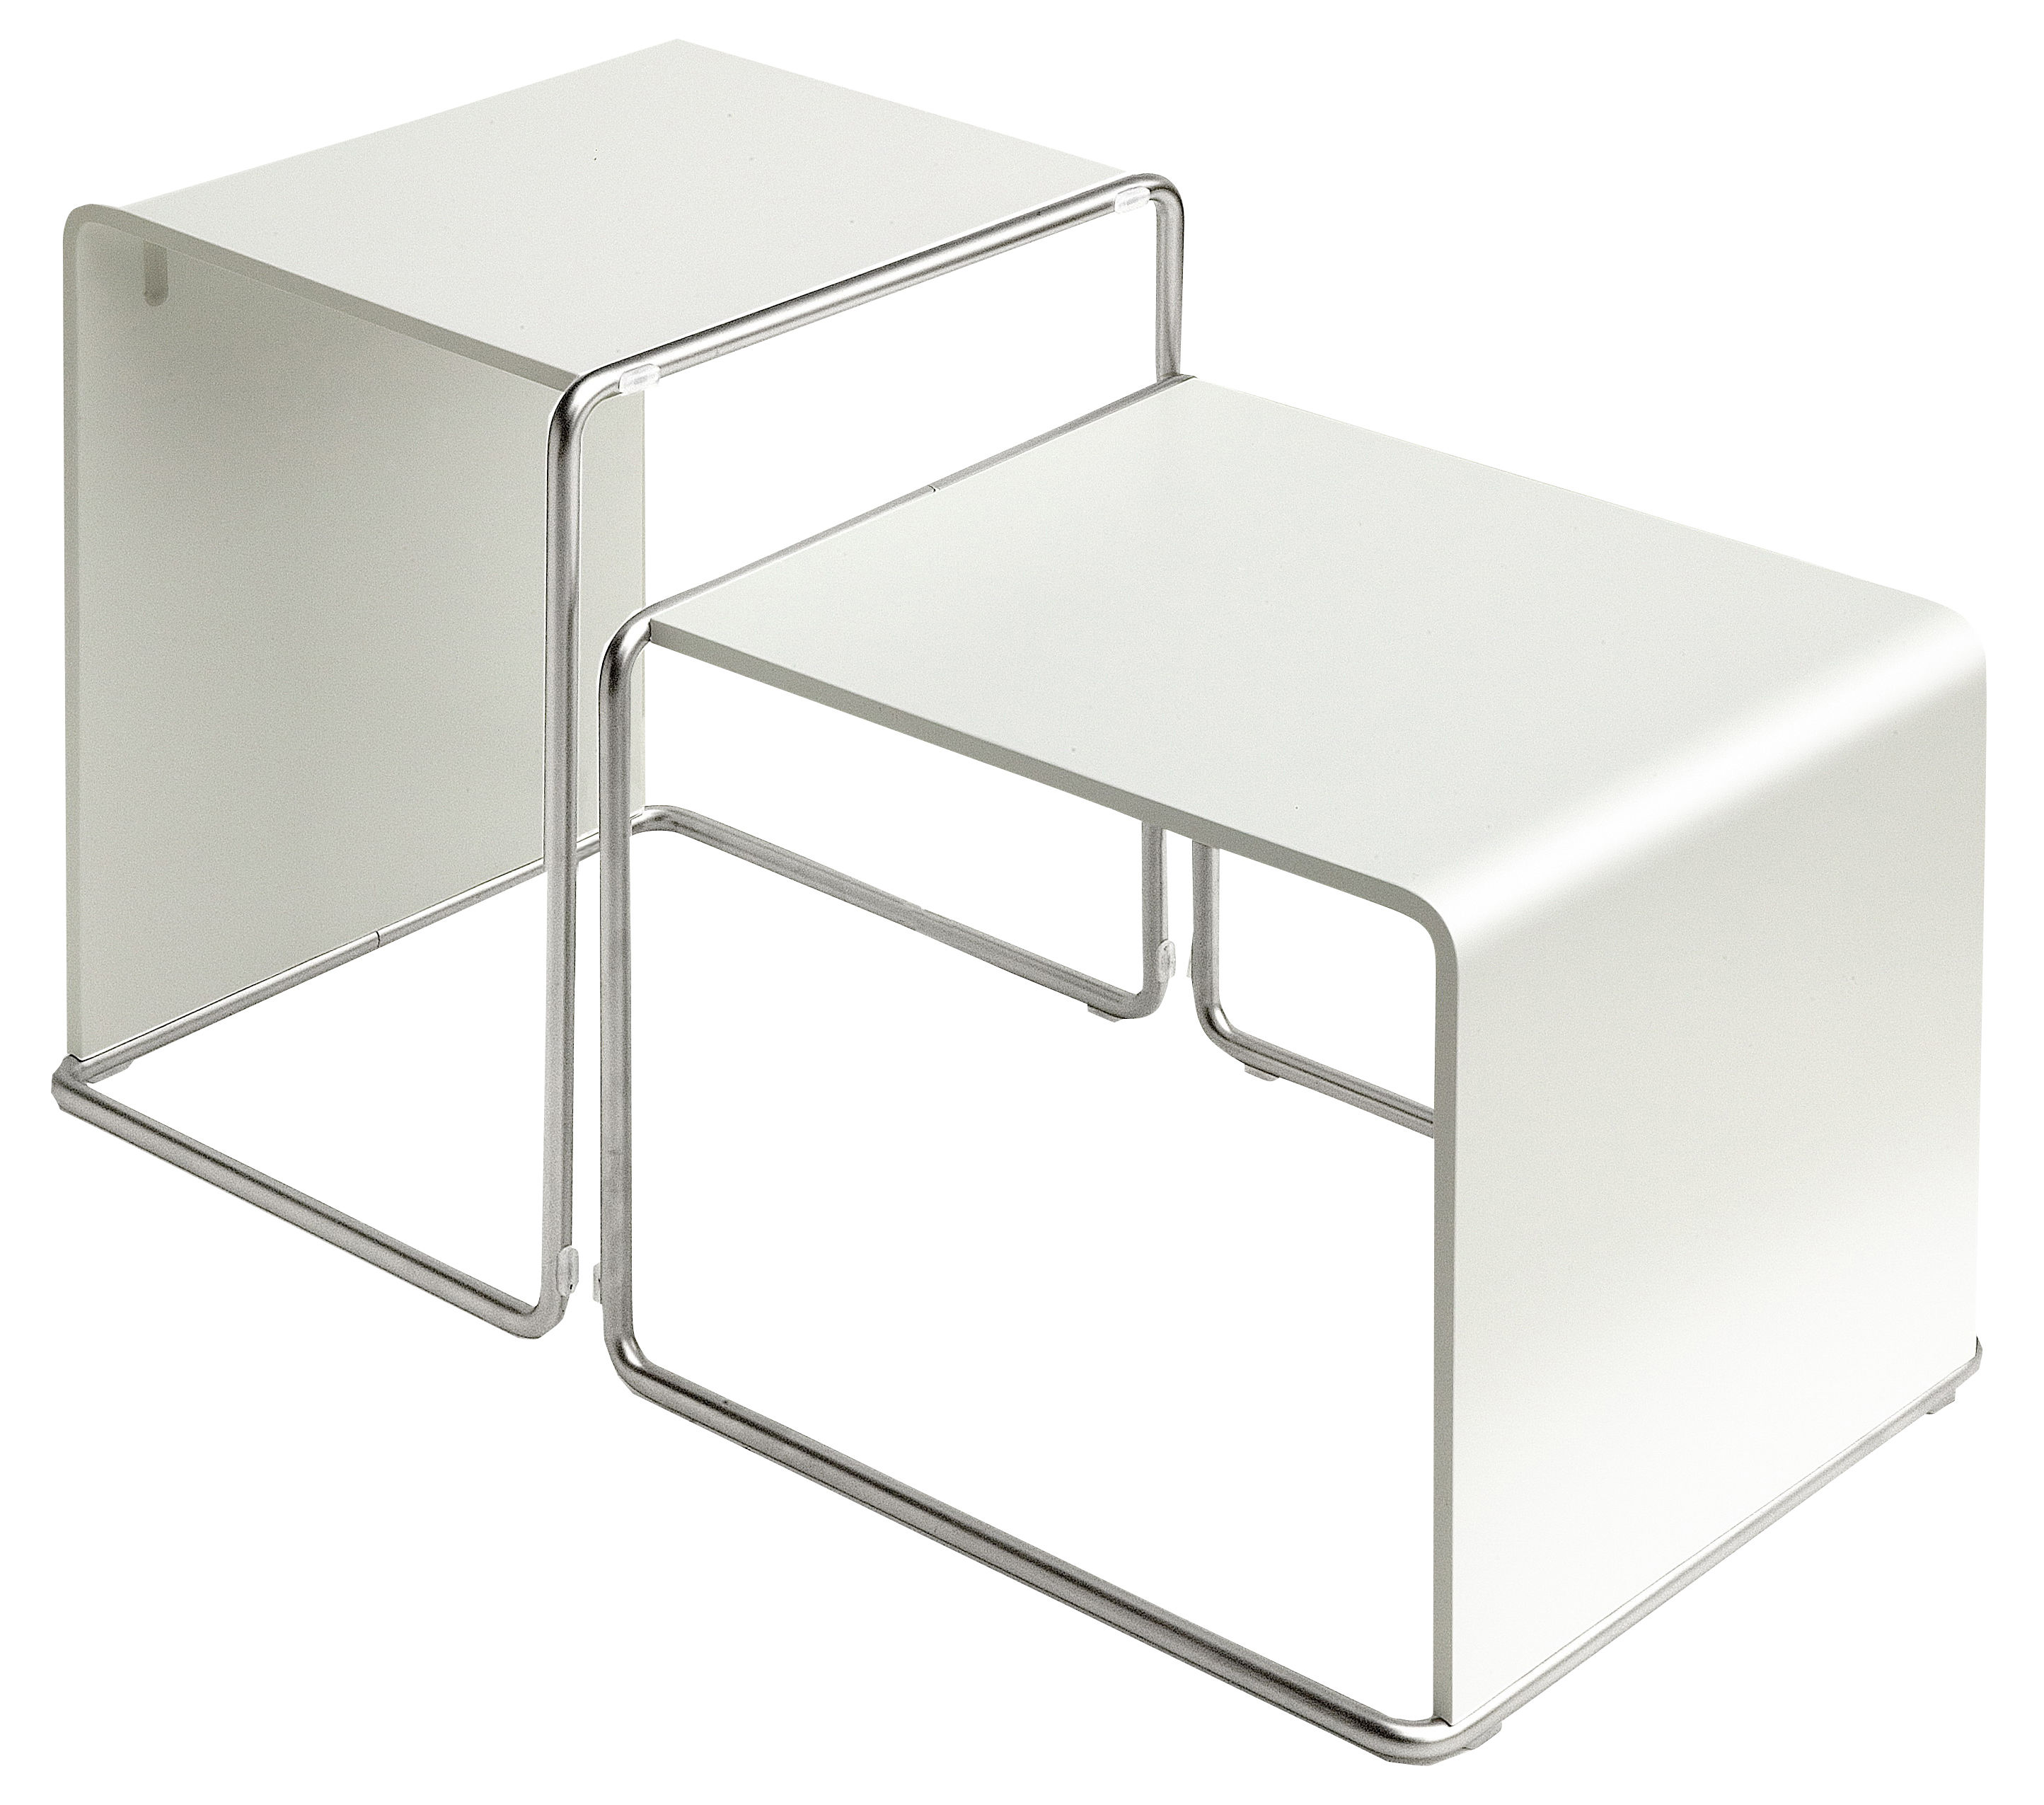 Furniture - Coffee Tables - Ueno End table by Lapalma - Laquered white - Lacquered oak, Sandy stainless steel